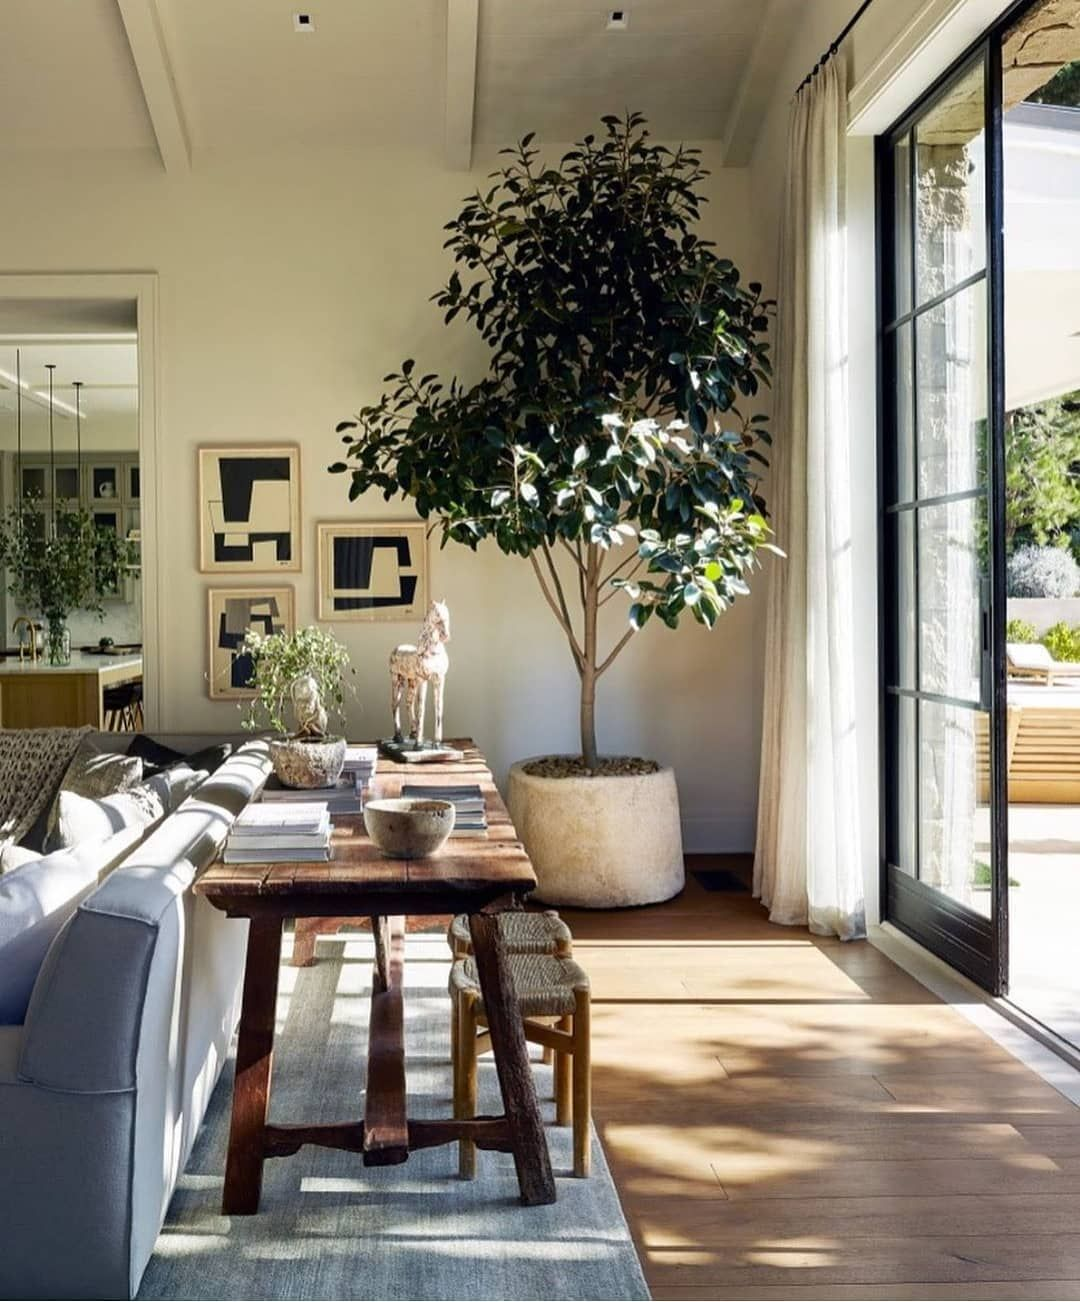 Tumblr House Interior Home Decor House Design House and home decorating living room